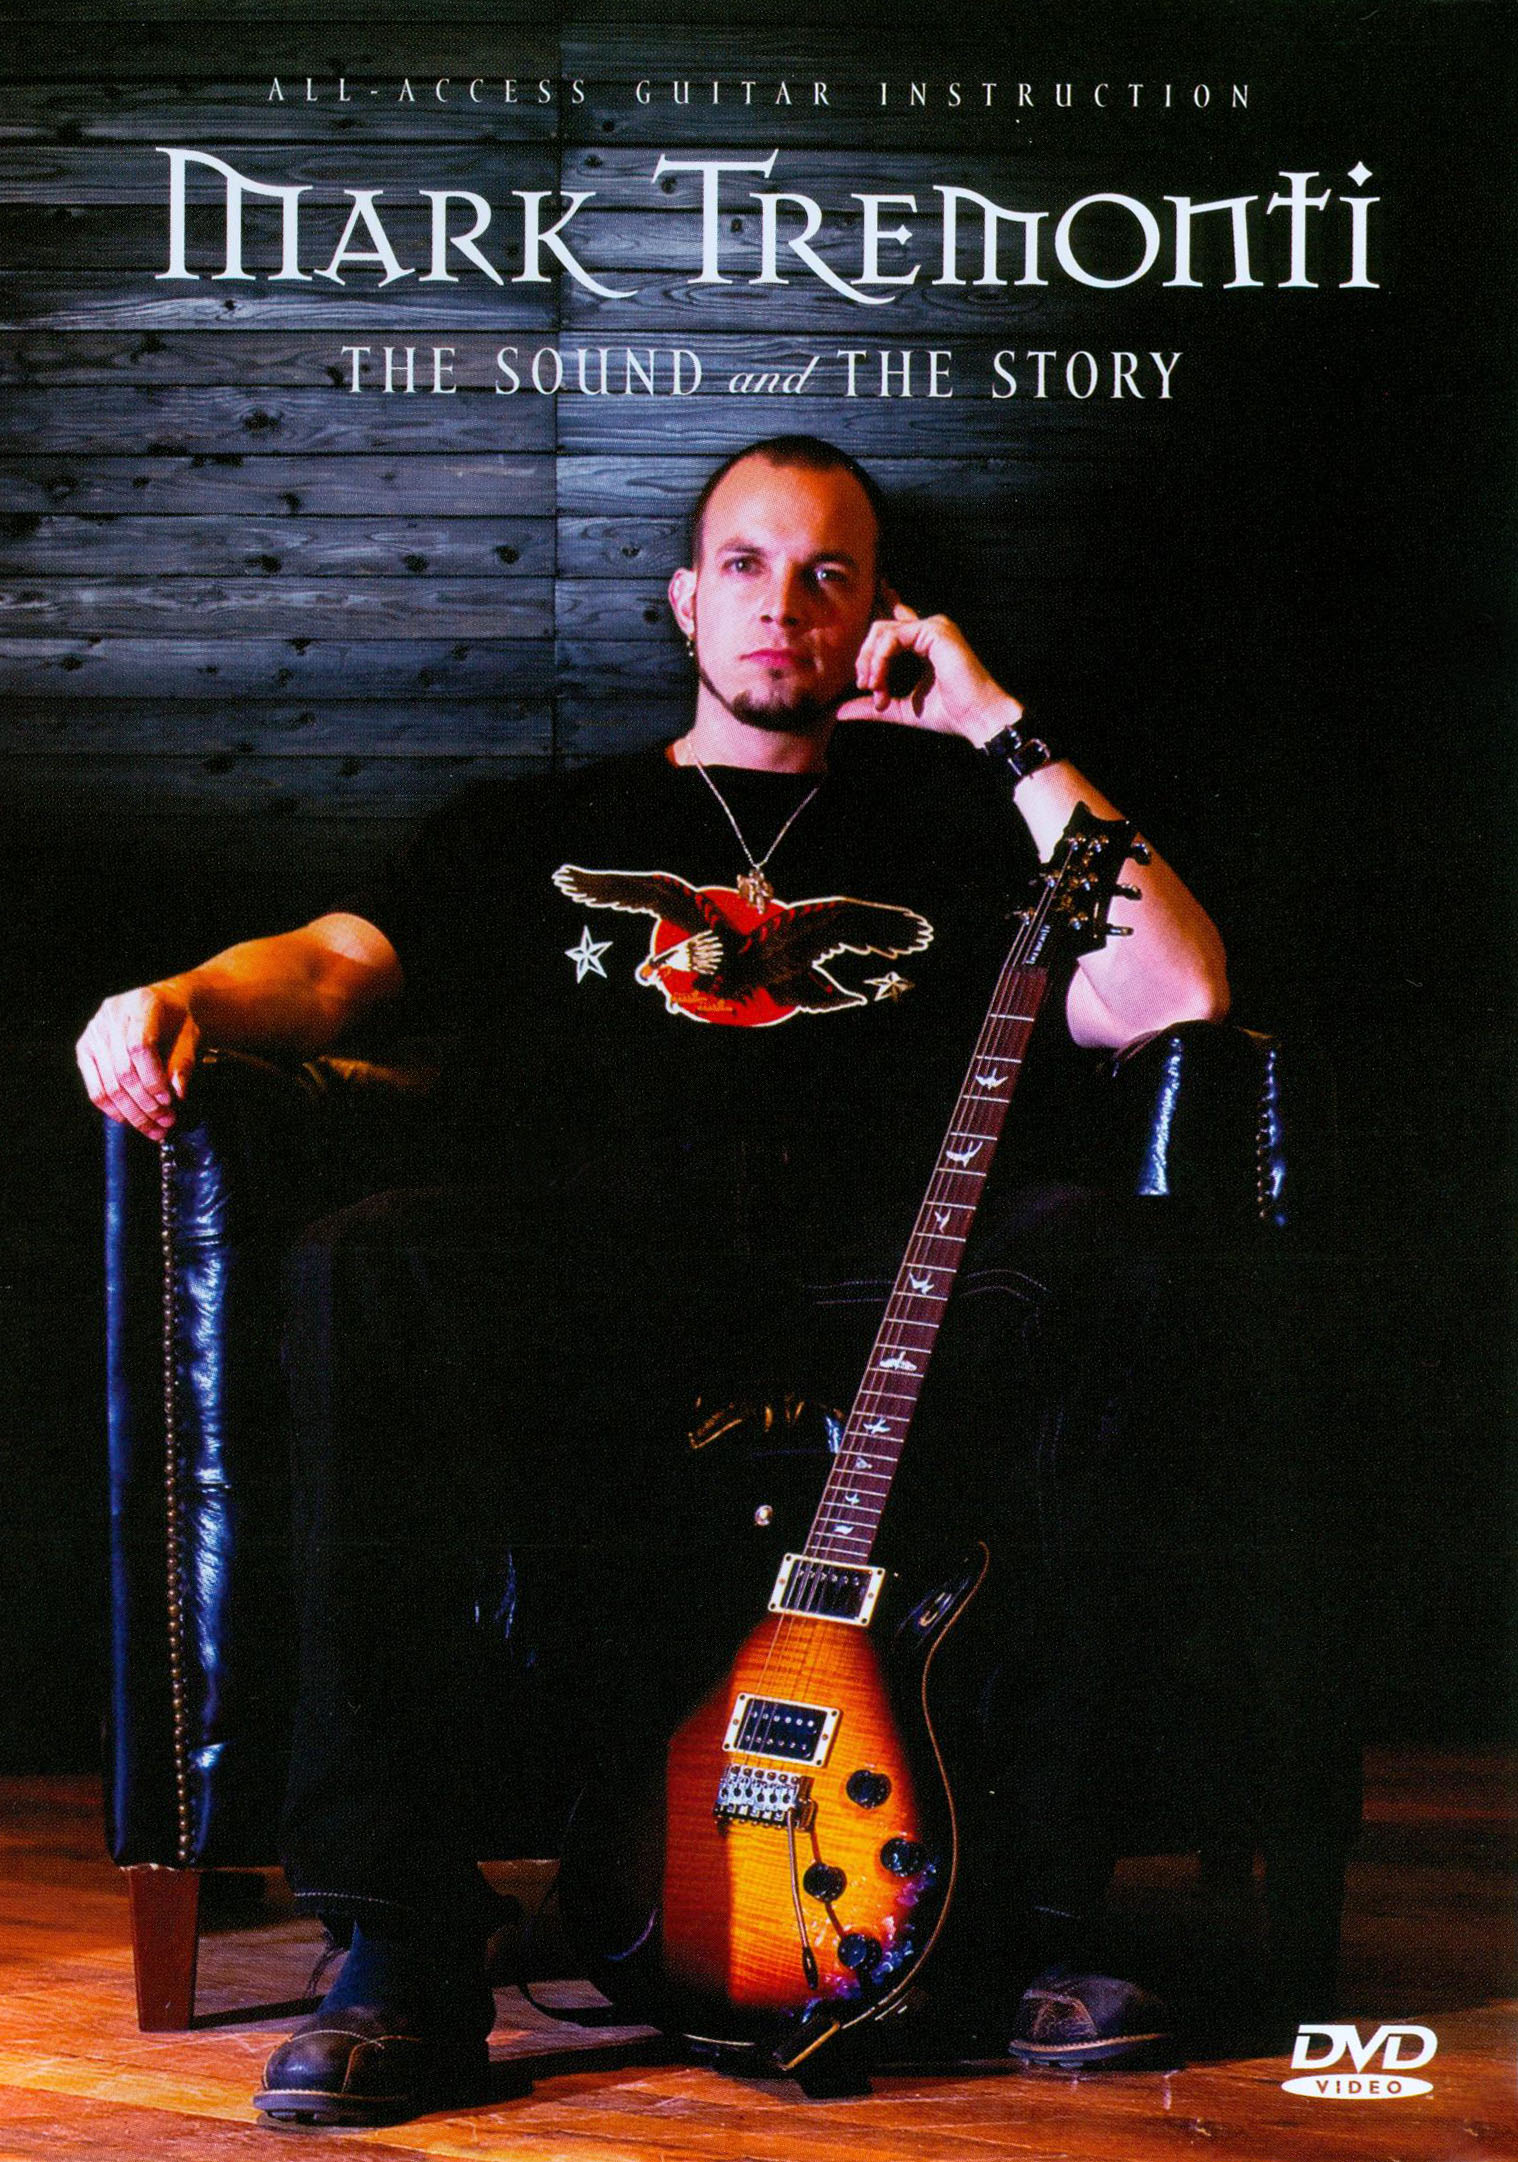 Mark Tremonti: The Sound and the Story